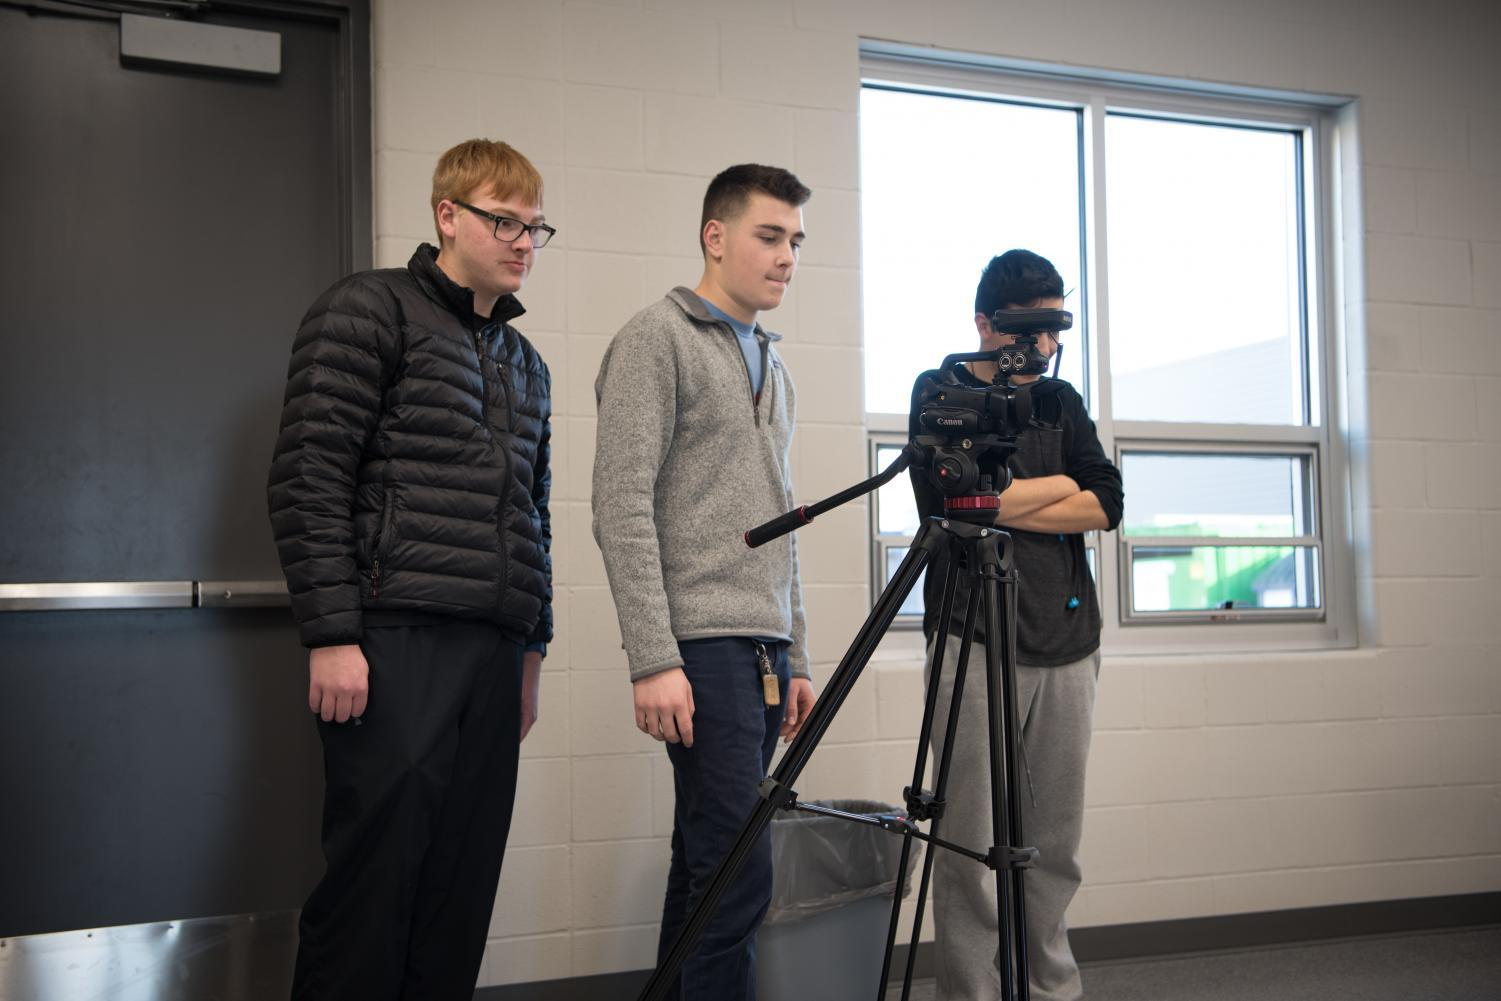 Broadcast+students+recording+video+to+get+practice+for+their+new+class+based+in+the+new+CTE+building.+The+new+equipment+provided+with+the+building+will+help+increase+their+technical+experience.+